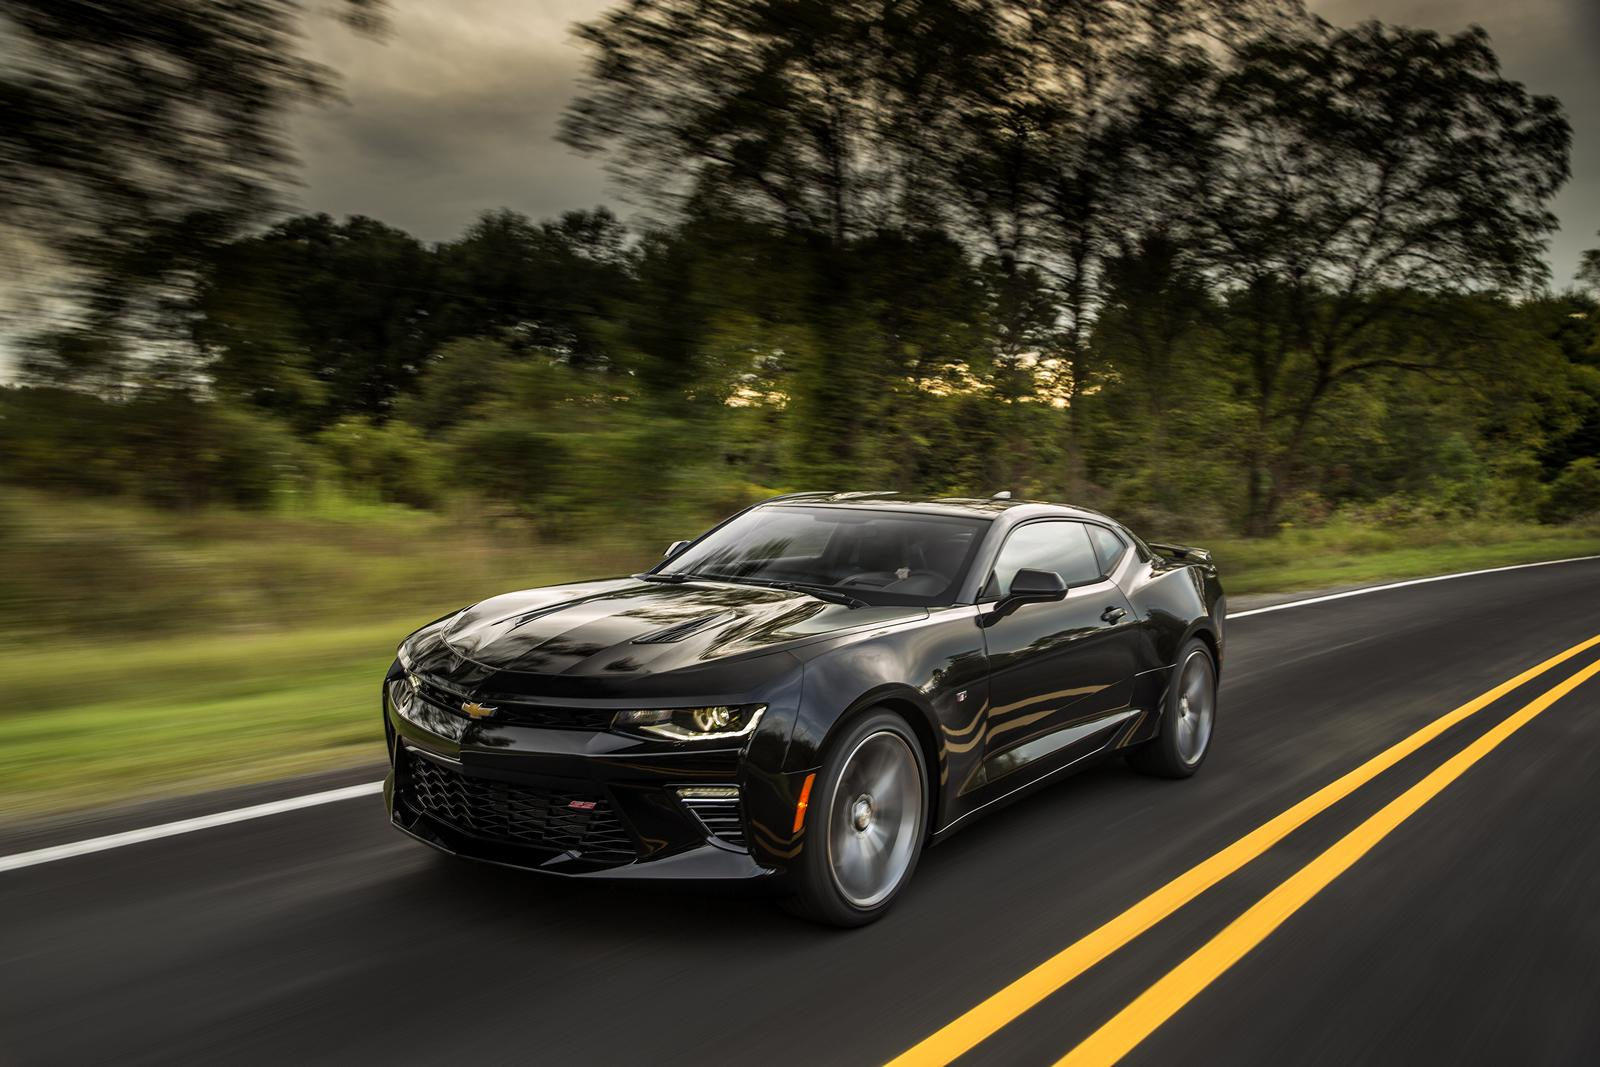 2016 Chevrolet Camaro SS Wallpaper HD Car Wallpapers 1600x1067